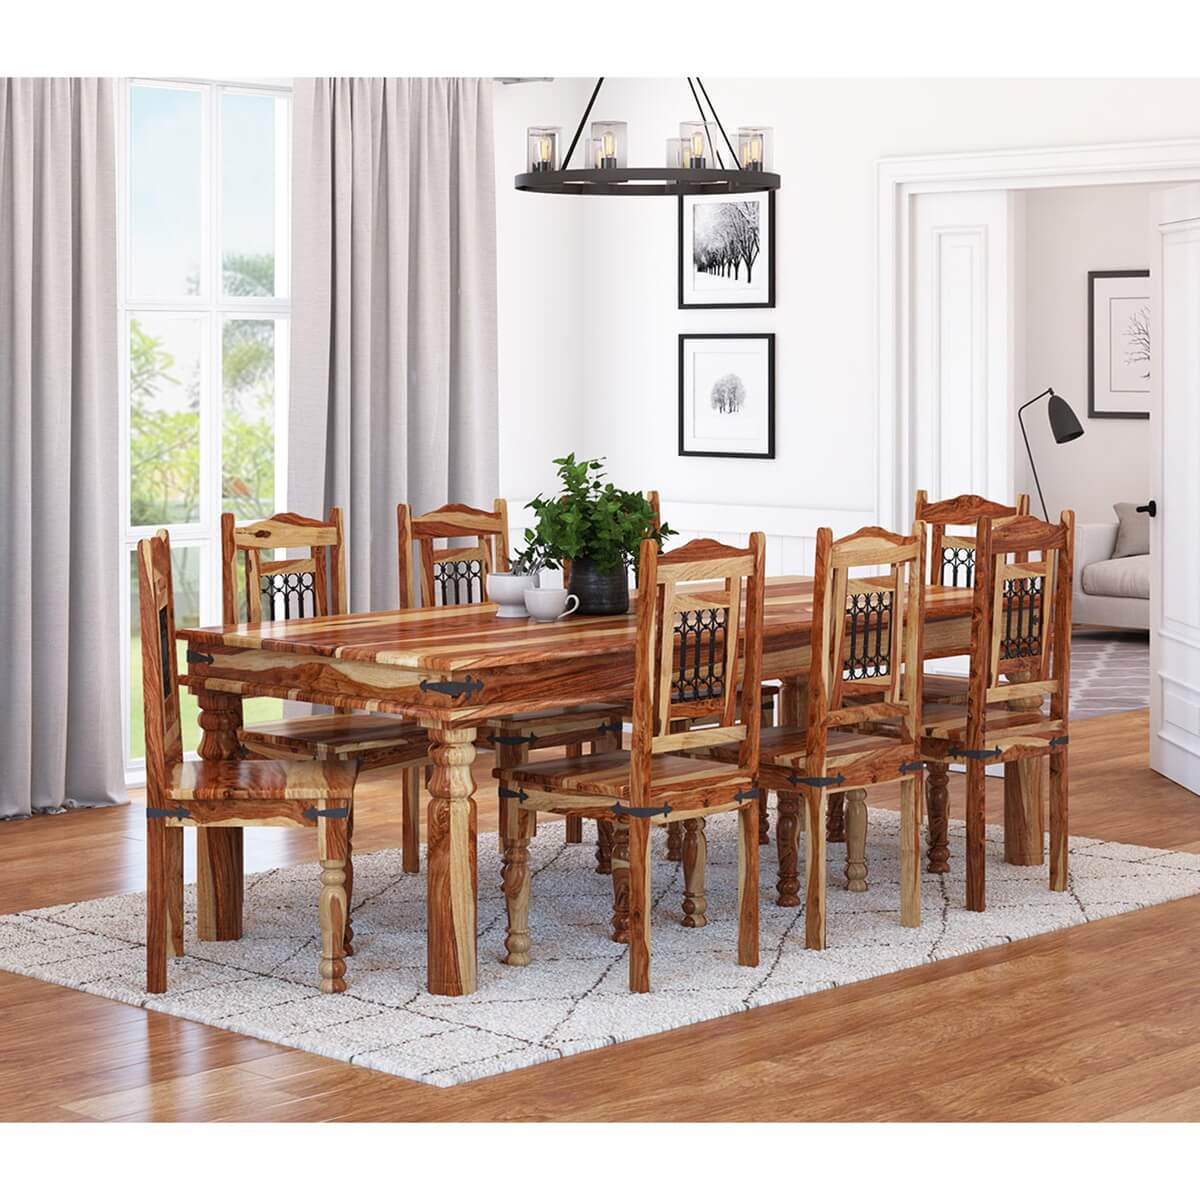 Dallas classic solid wood rustic dining room table and chair set Wooden dining table and chairs